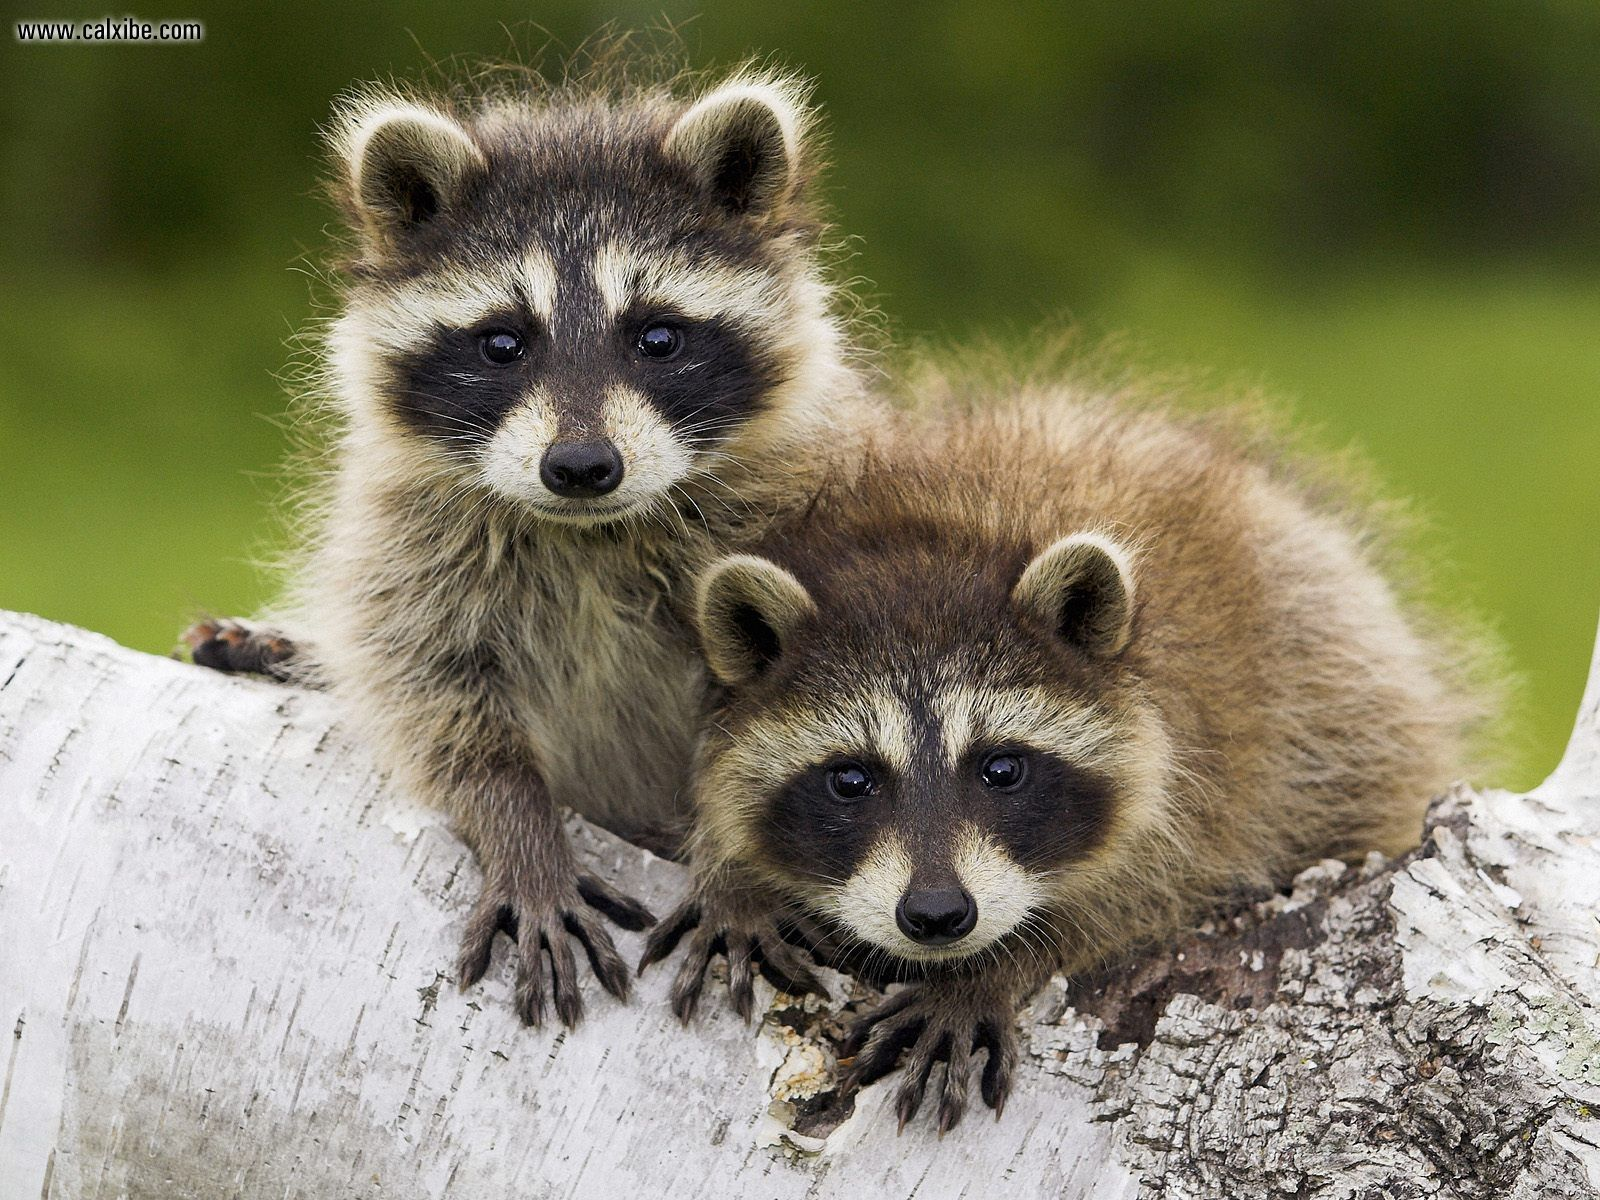 Day_3_of_11__File_50_of_50__Young_Raccoons_Minnesota.jpg